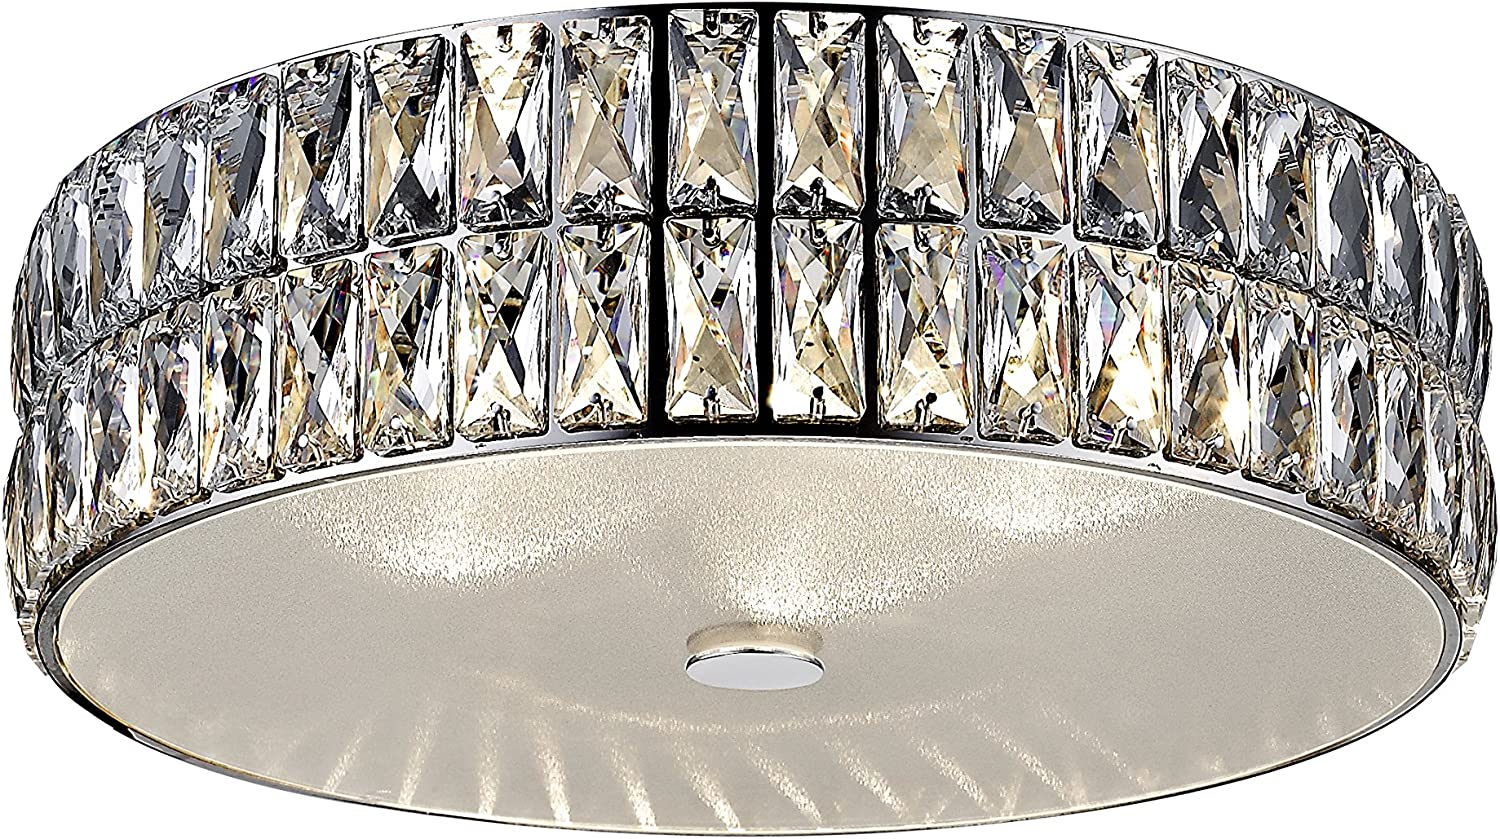 Crystal Glass Diffuser 15D Magari LED Crystal Flush Mount Mirrored Stainless Steel